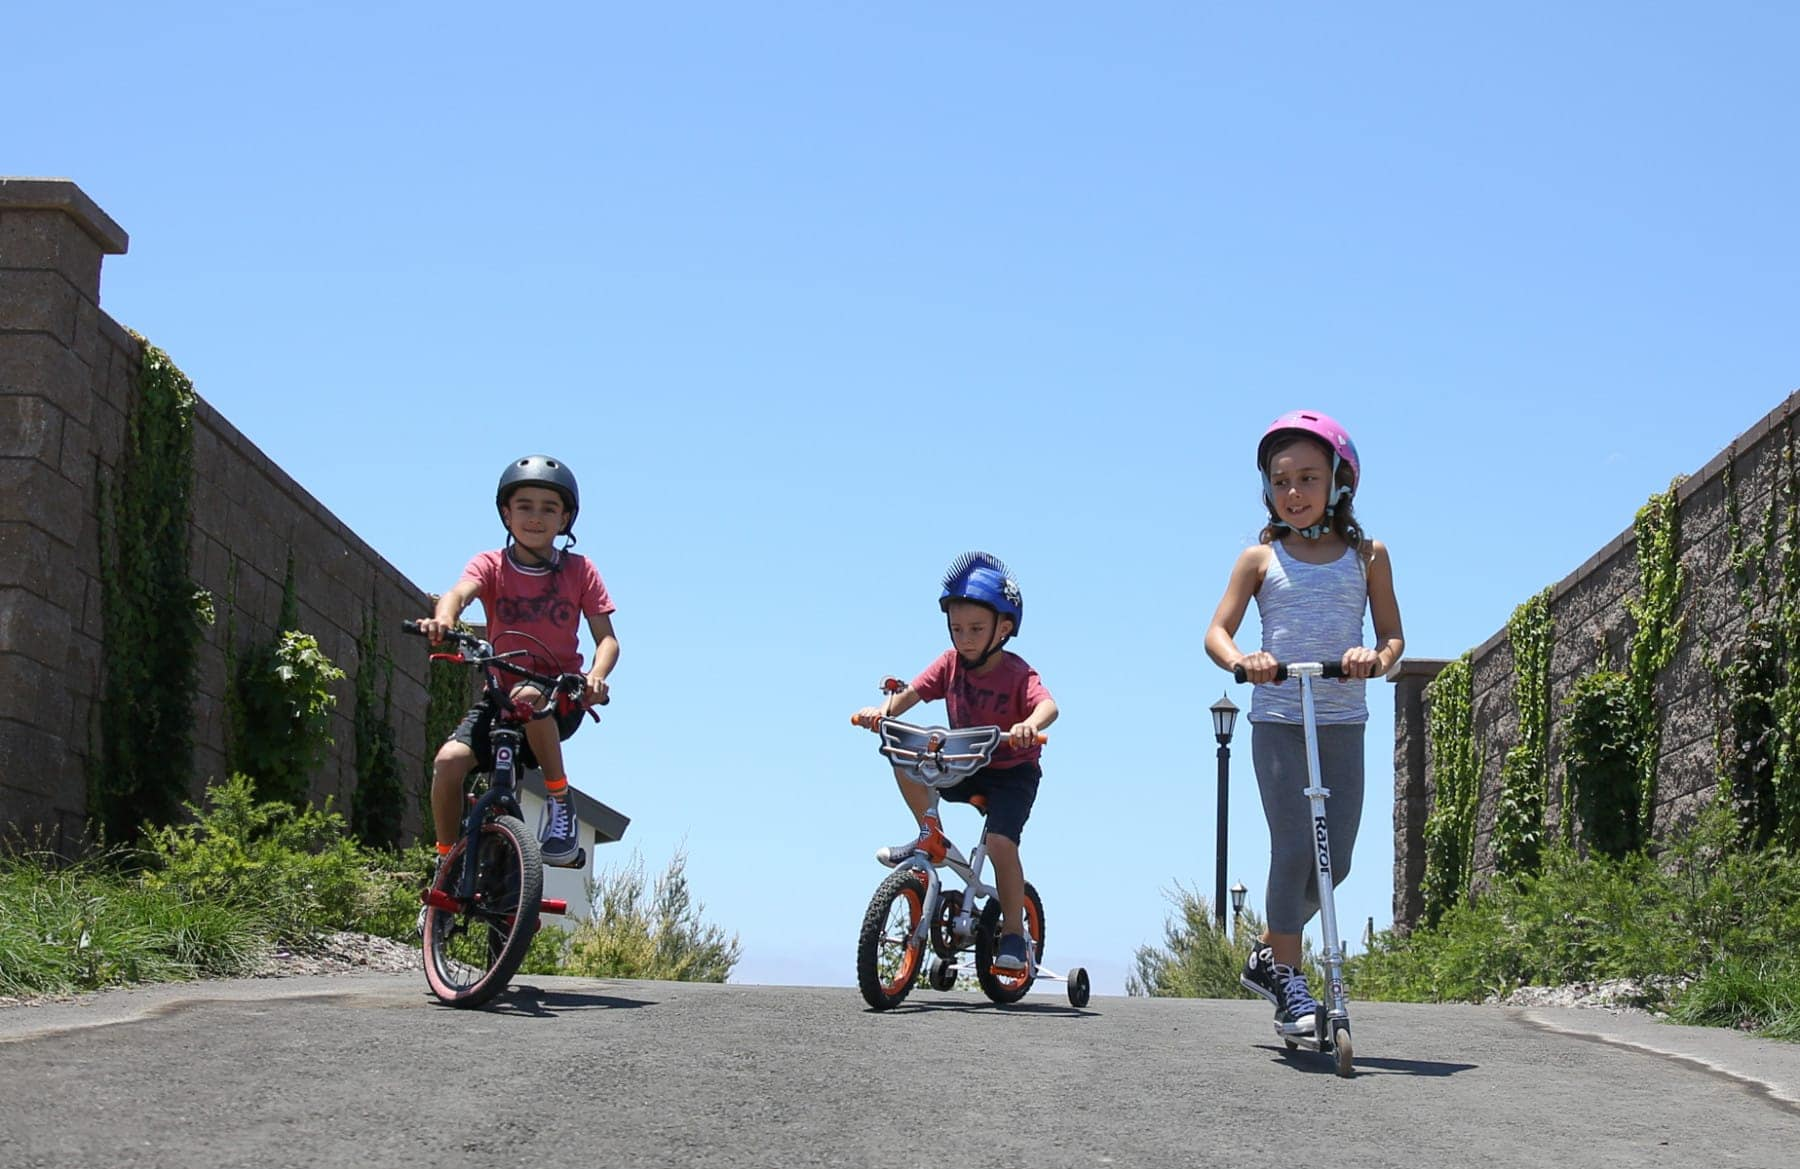 kids on bicycles